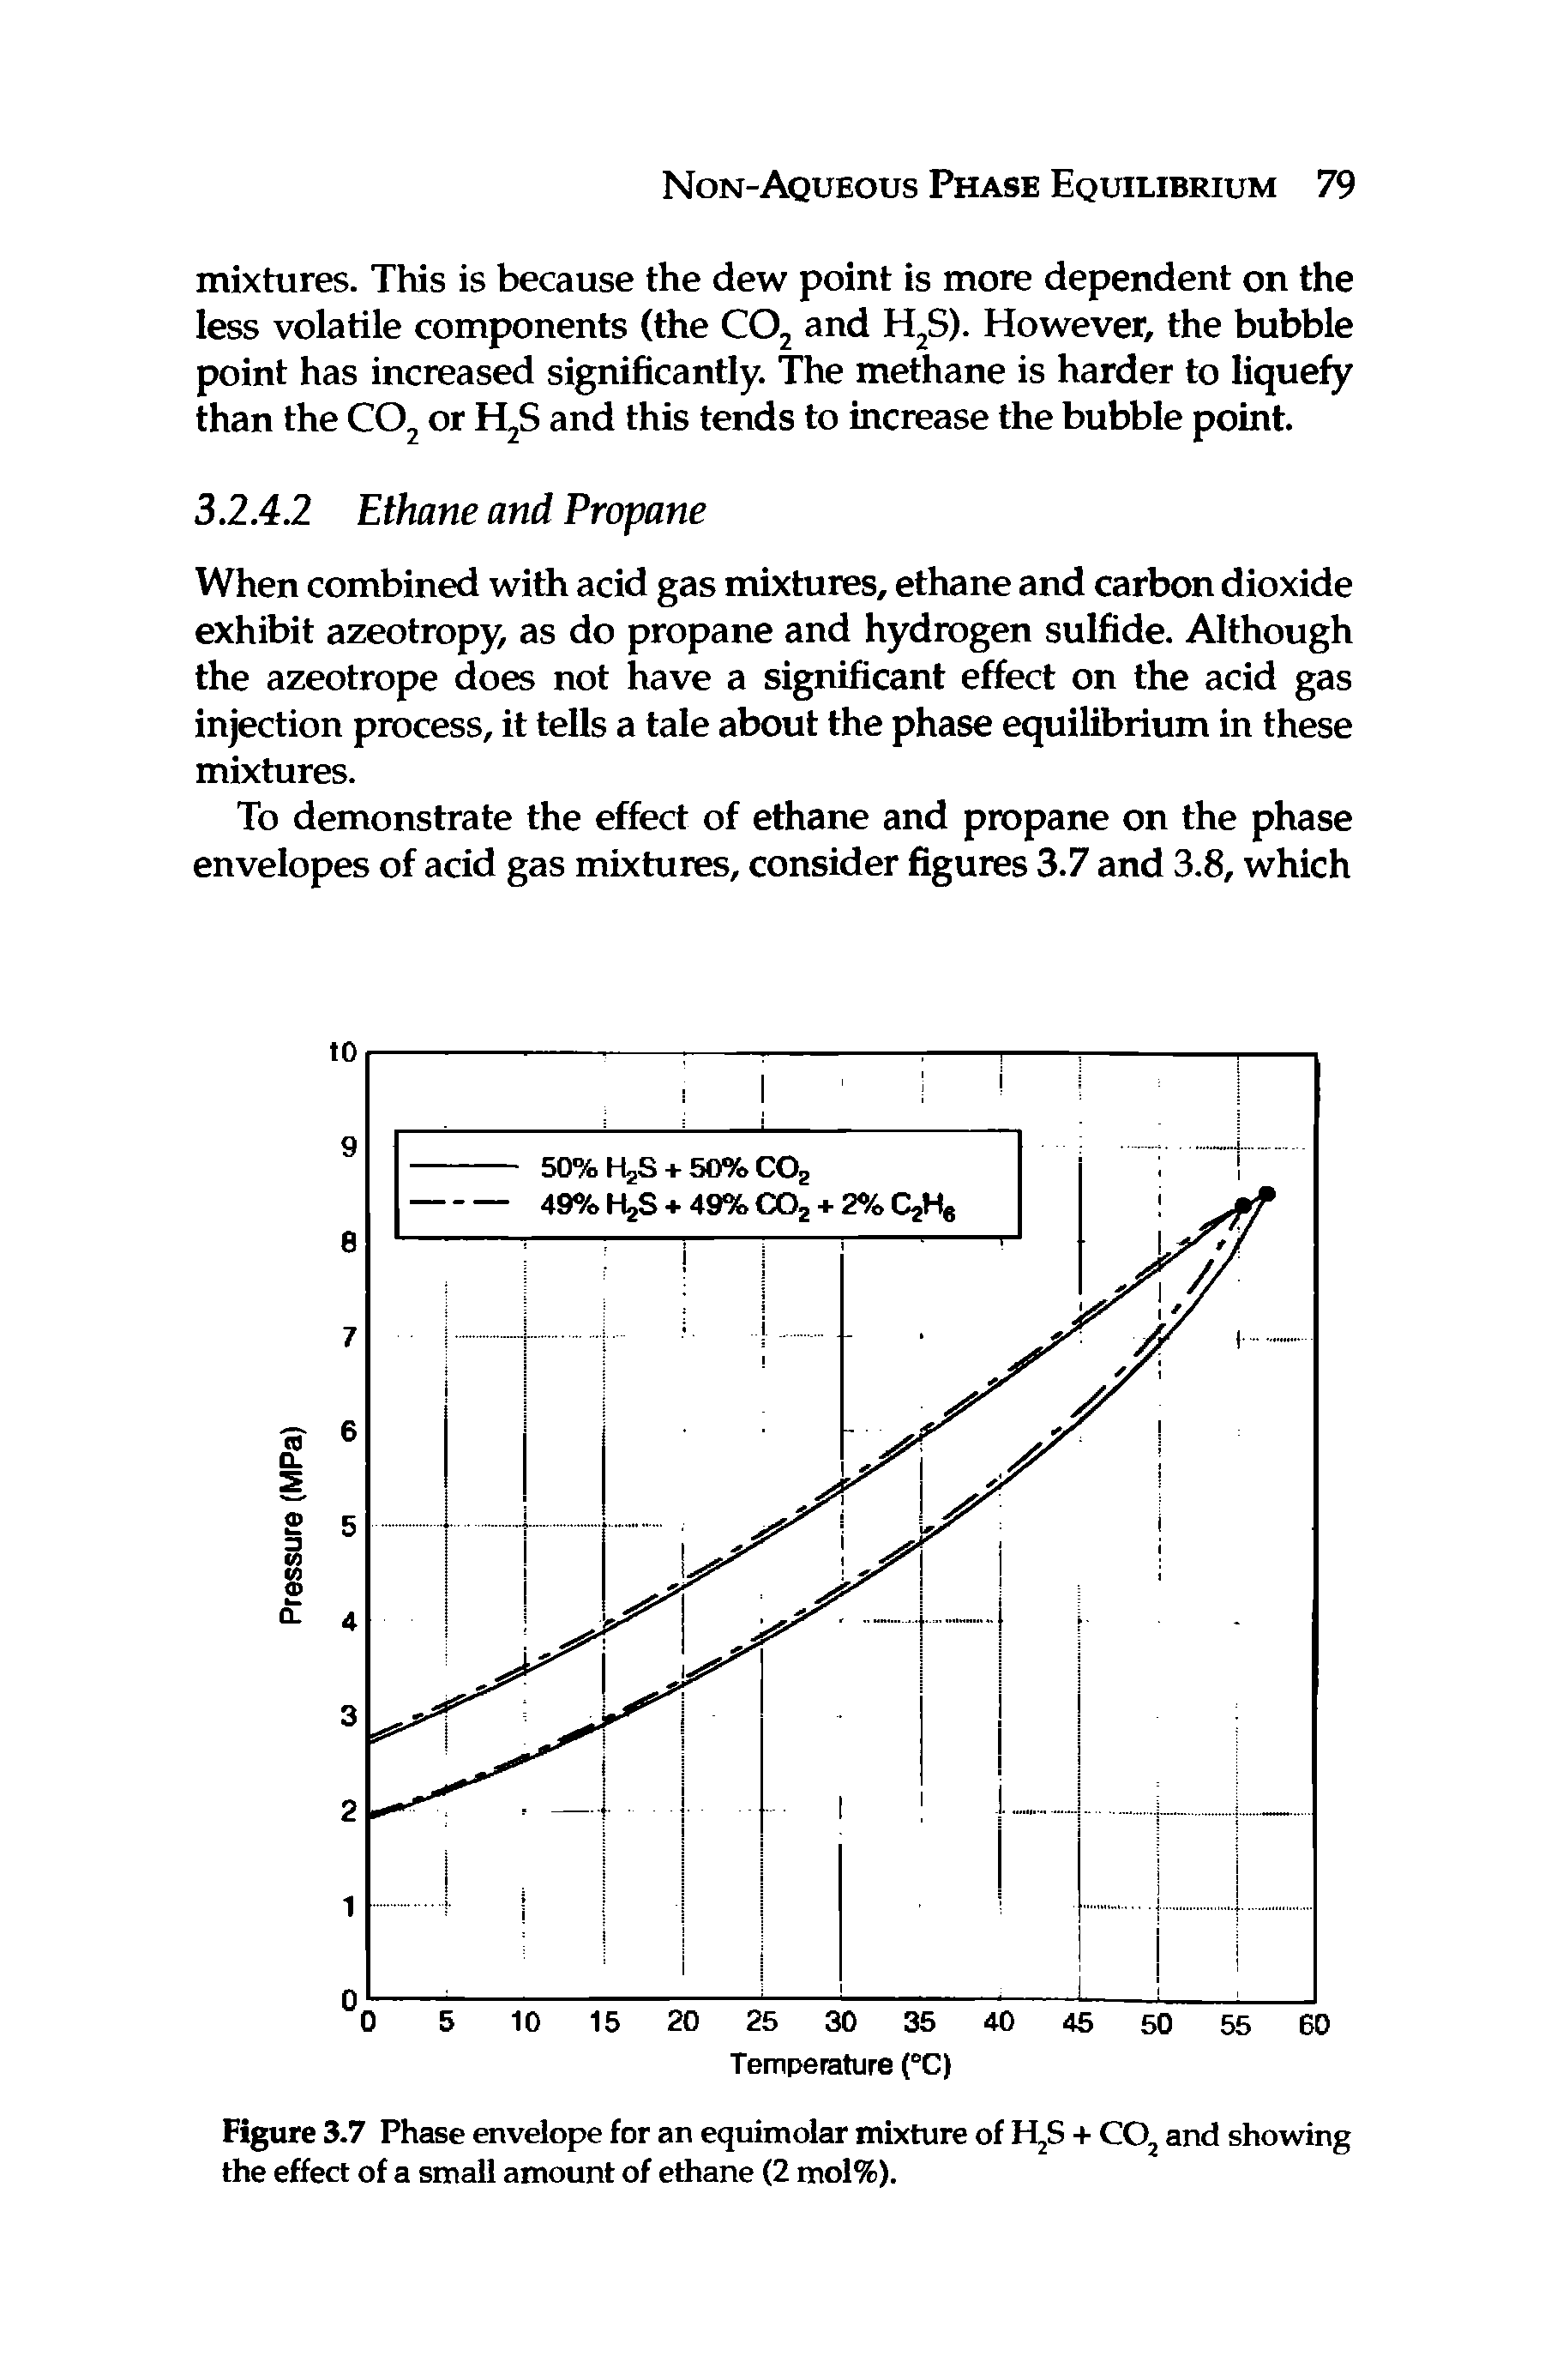 "Figure 3.7 <a href=""/info/two_phase_envelope"">Phase envelope</a> for an equimolar mixture of H2S + C02 and showing the effect of a <a href=""/info/small_amounts"">small amount</a> of ethane (2 mol%)."